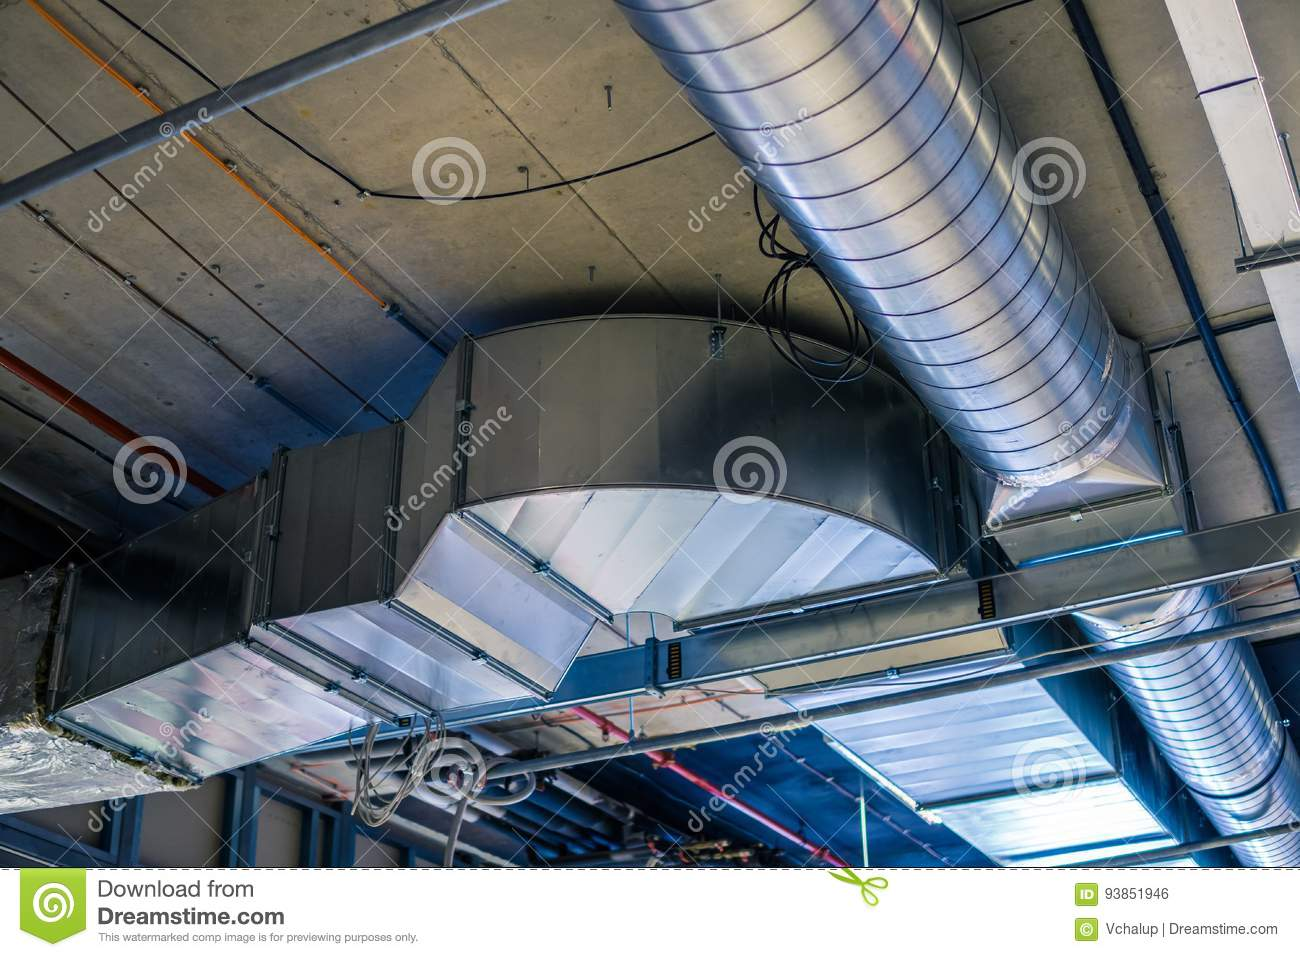 Pipes of HVAC system heating ventilation and air conditioning